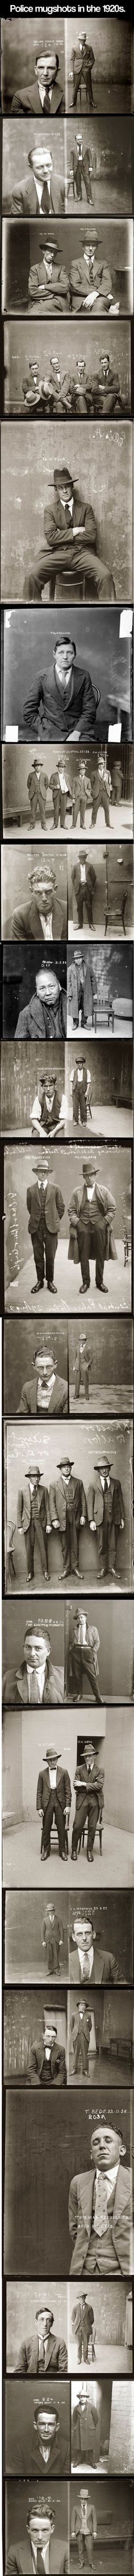 Police mugshots in the 1920s.